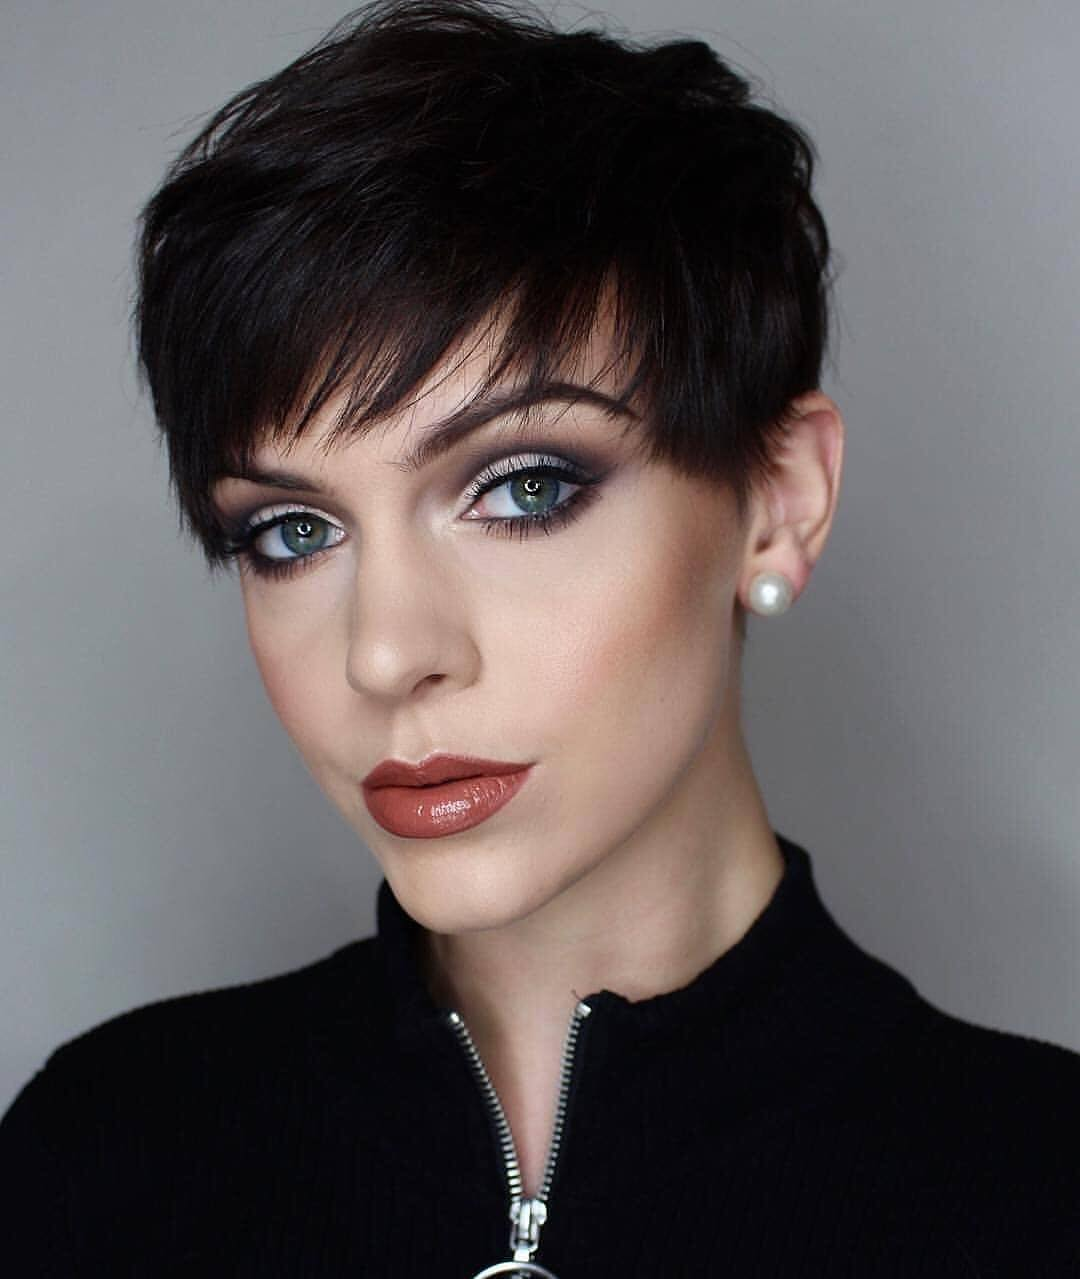 Stylish Pixie Haircuts Every Women Should See |Pixie Hair Cuts